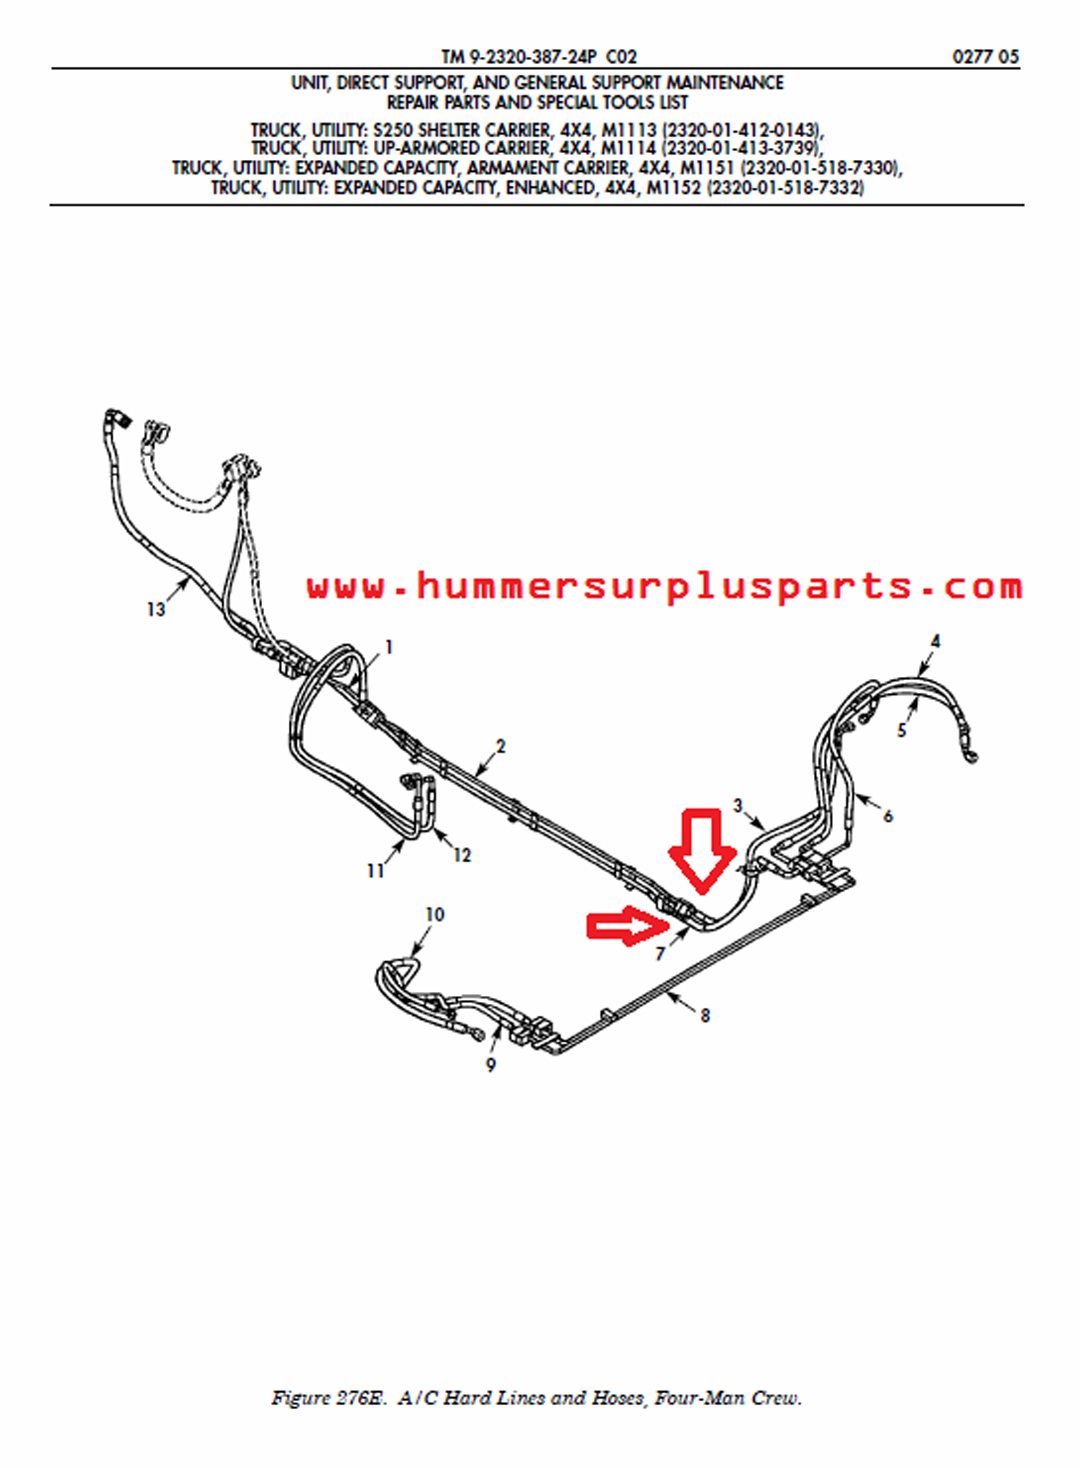 Hmmwv Parts Diagram Nice Place To Get Wiring Engine Am General 6015671 Hose Assembly 4720 01 536 2995 Rh Hummersurplusparts Com